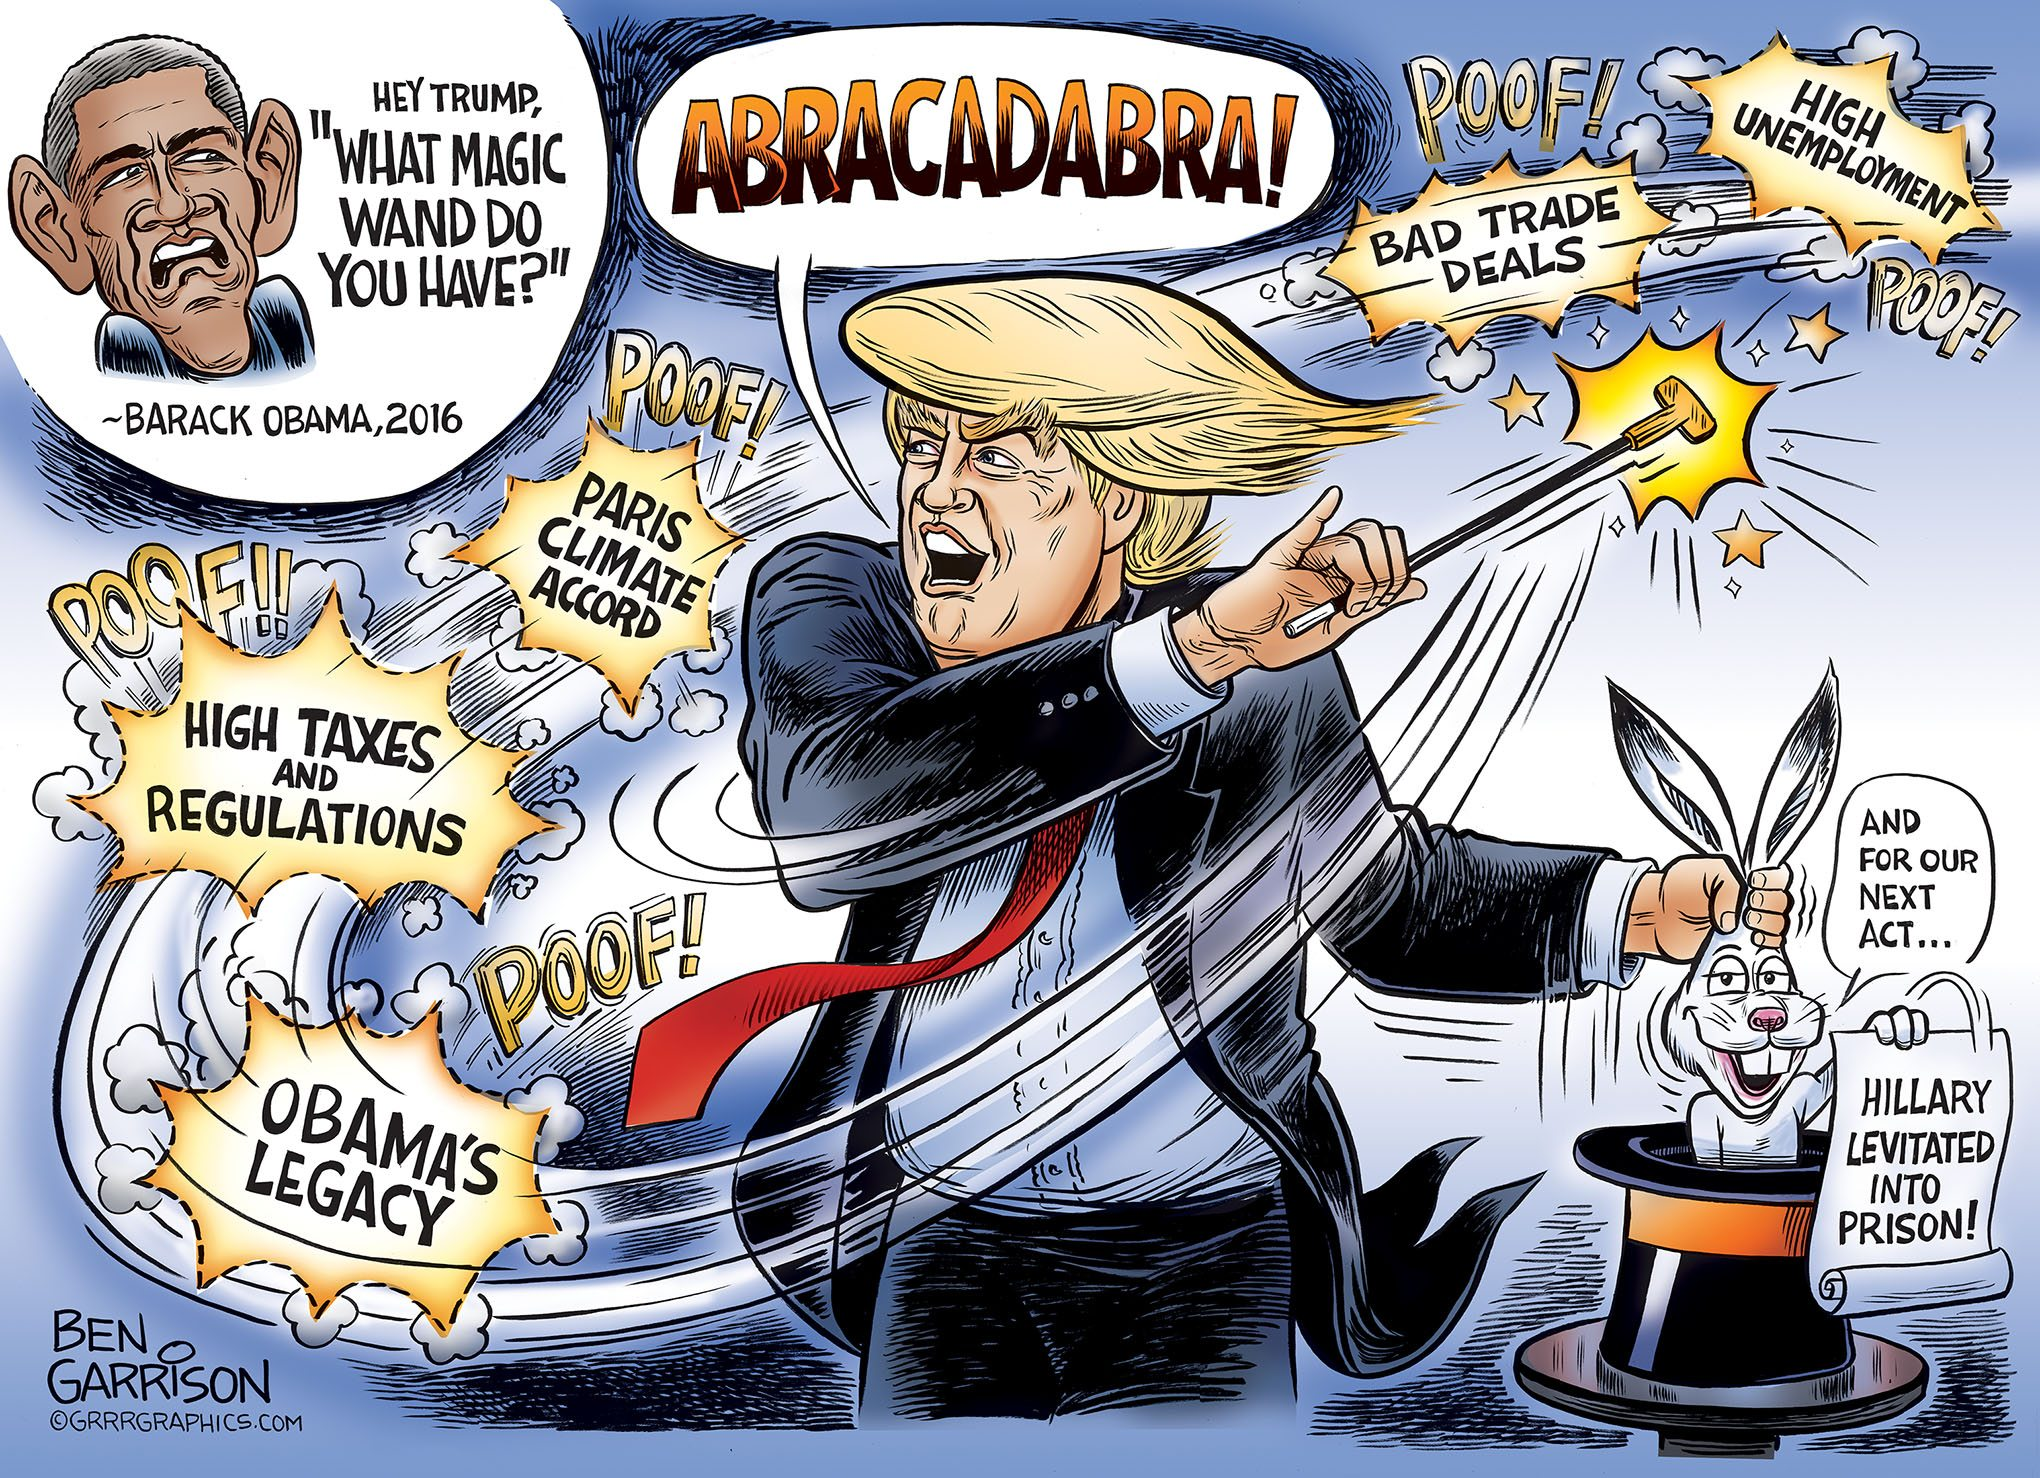 Trump's MAGA Magic